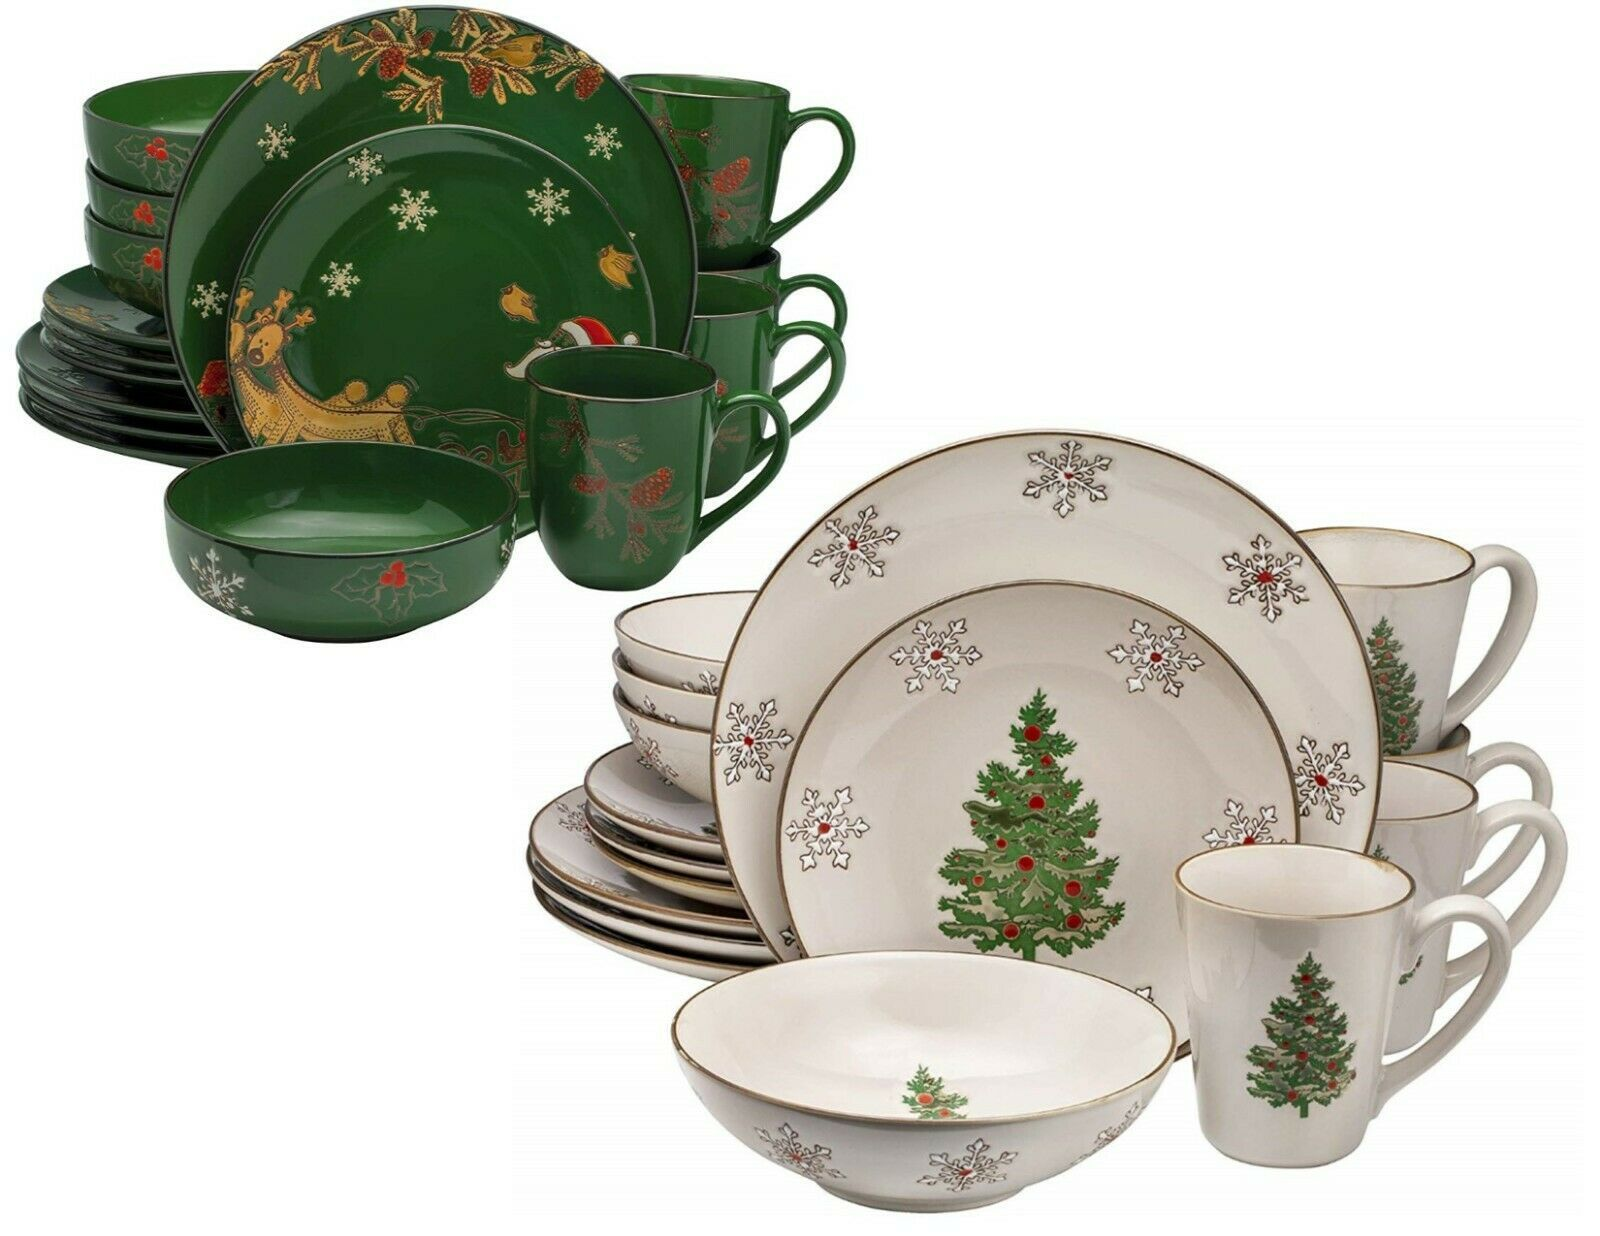 Christmas Ceramic Classic & Modern Dinnerware Set Dinner Plates Bowls Mugs  - Dinnerware - Ideas of Dinnerware #Dinnerware #casualdinnerware Christmas Ceramic Classic & Modern Dinnerware Set Dinner Plates Bowls Mugs  - Dinnerware - Ideas of Dinnerware #Dinnerware #casualdinnerware